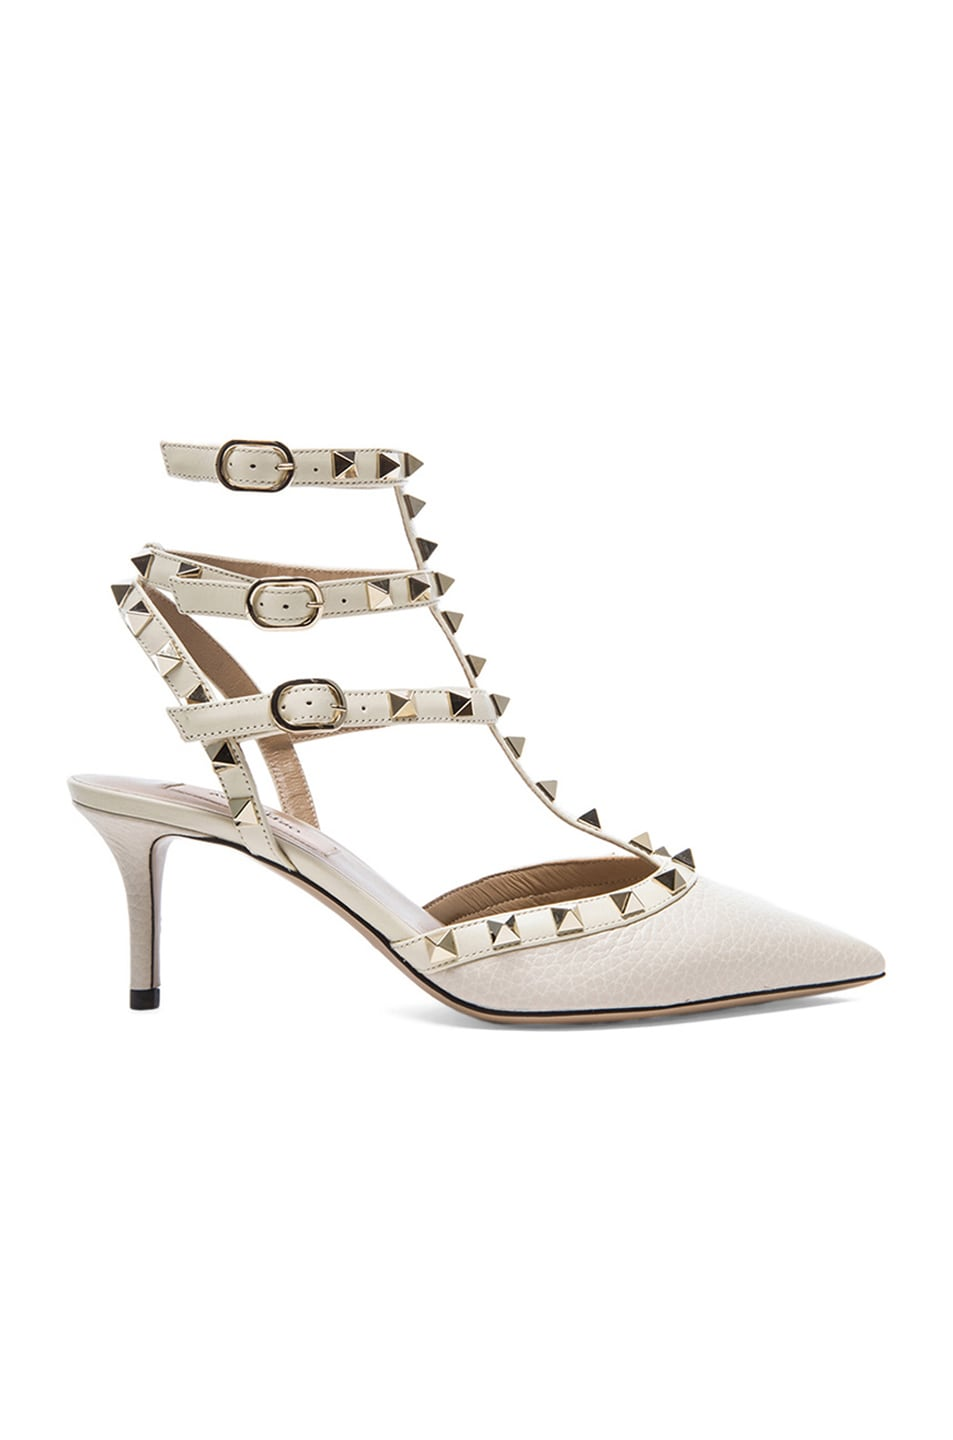 Image 1 of Valentino Rockstud Leather Slingbacks T.65 in Light Ivory